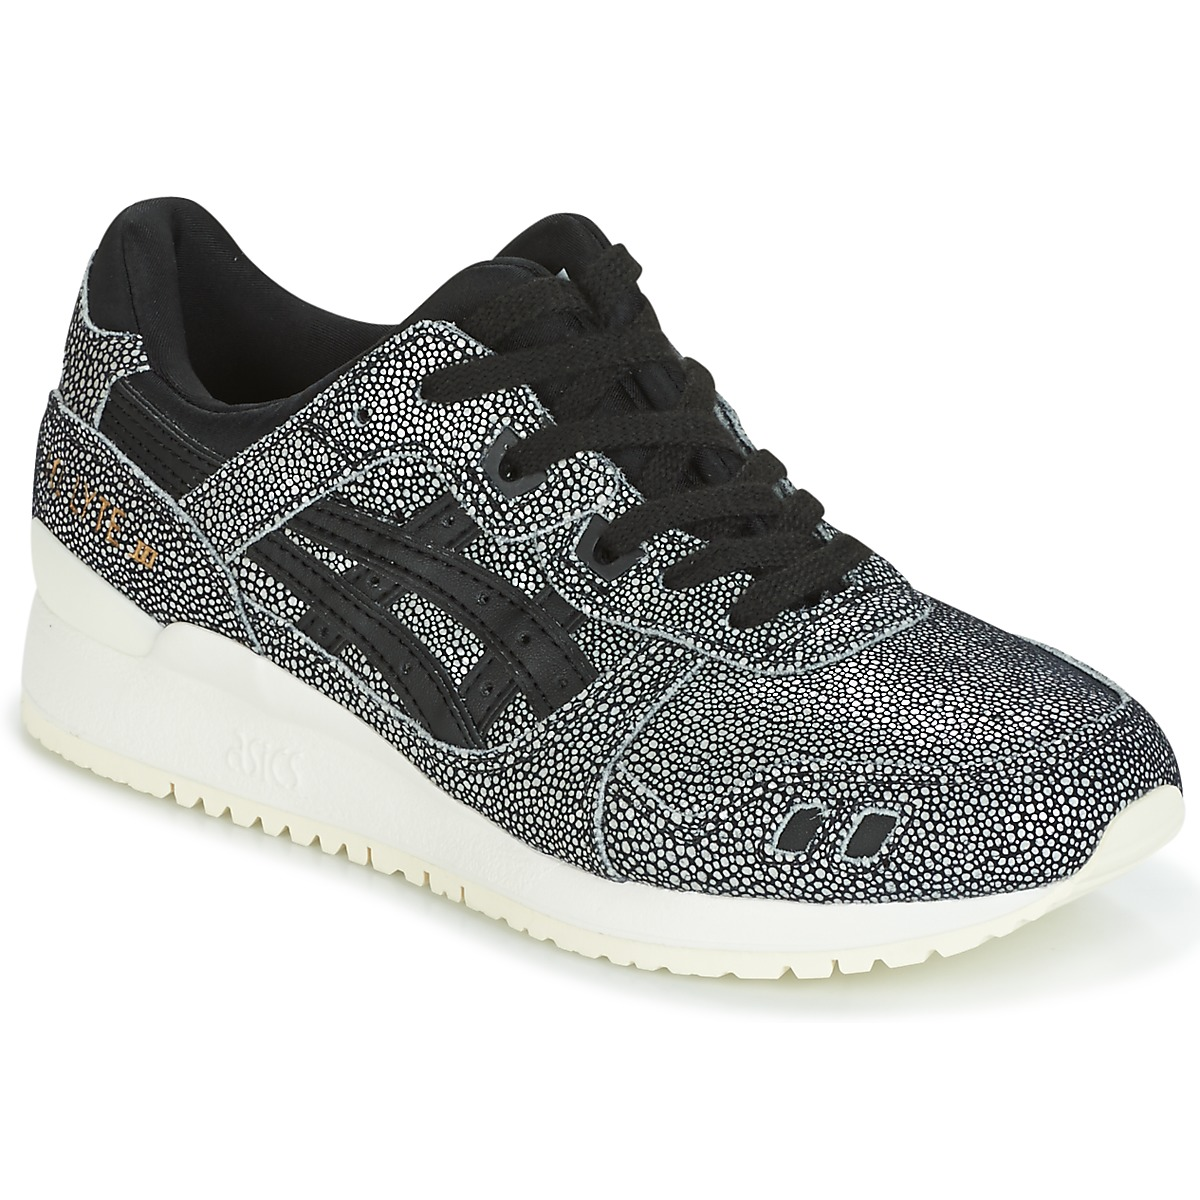 Asics GEL-LYTE III Grey - Fast delivery with Spartoo Europe ! - Shoes Low  top trainers Women 100,00 € 8bed6a31798a